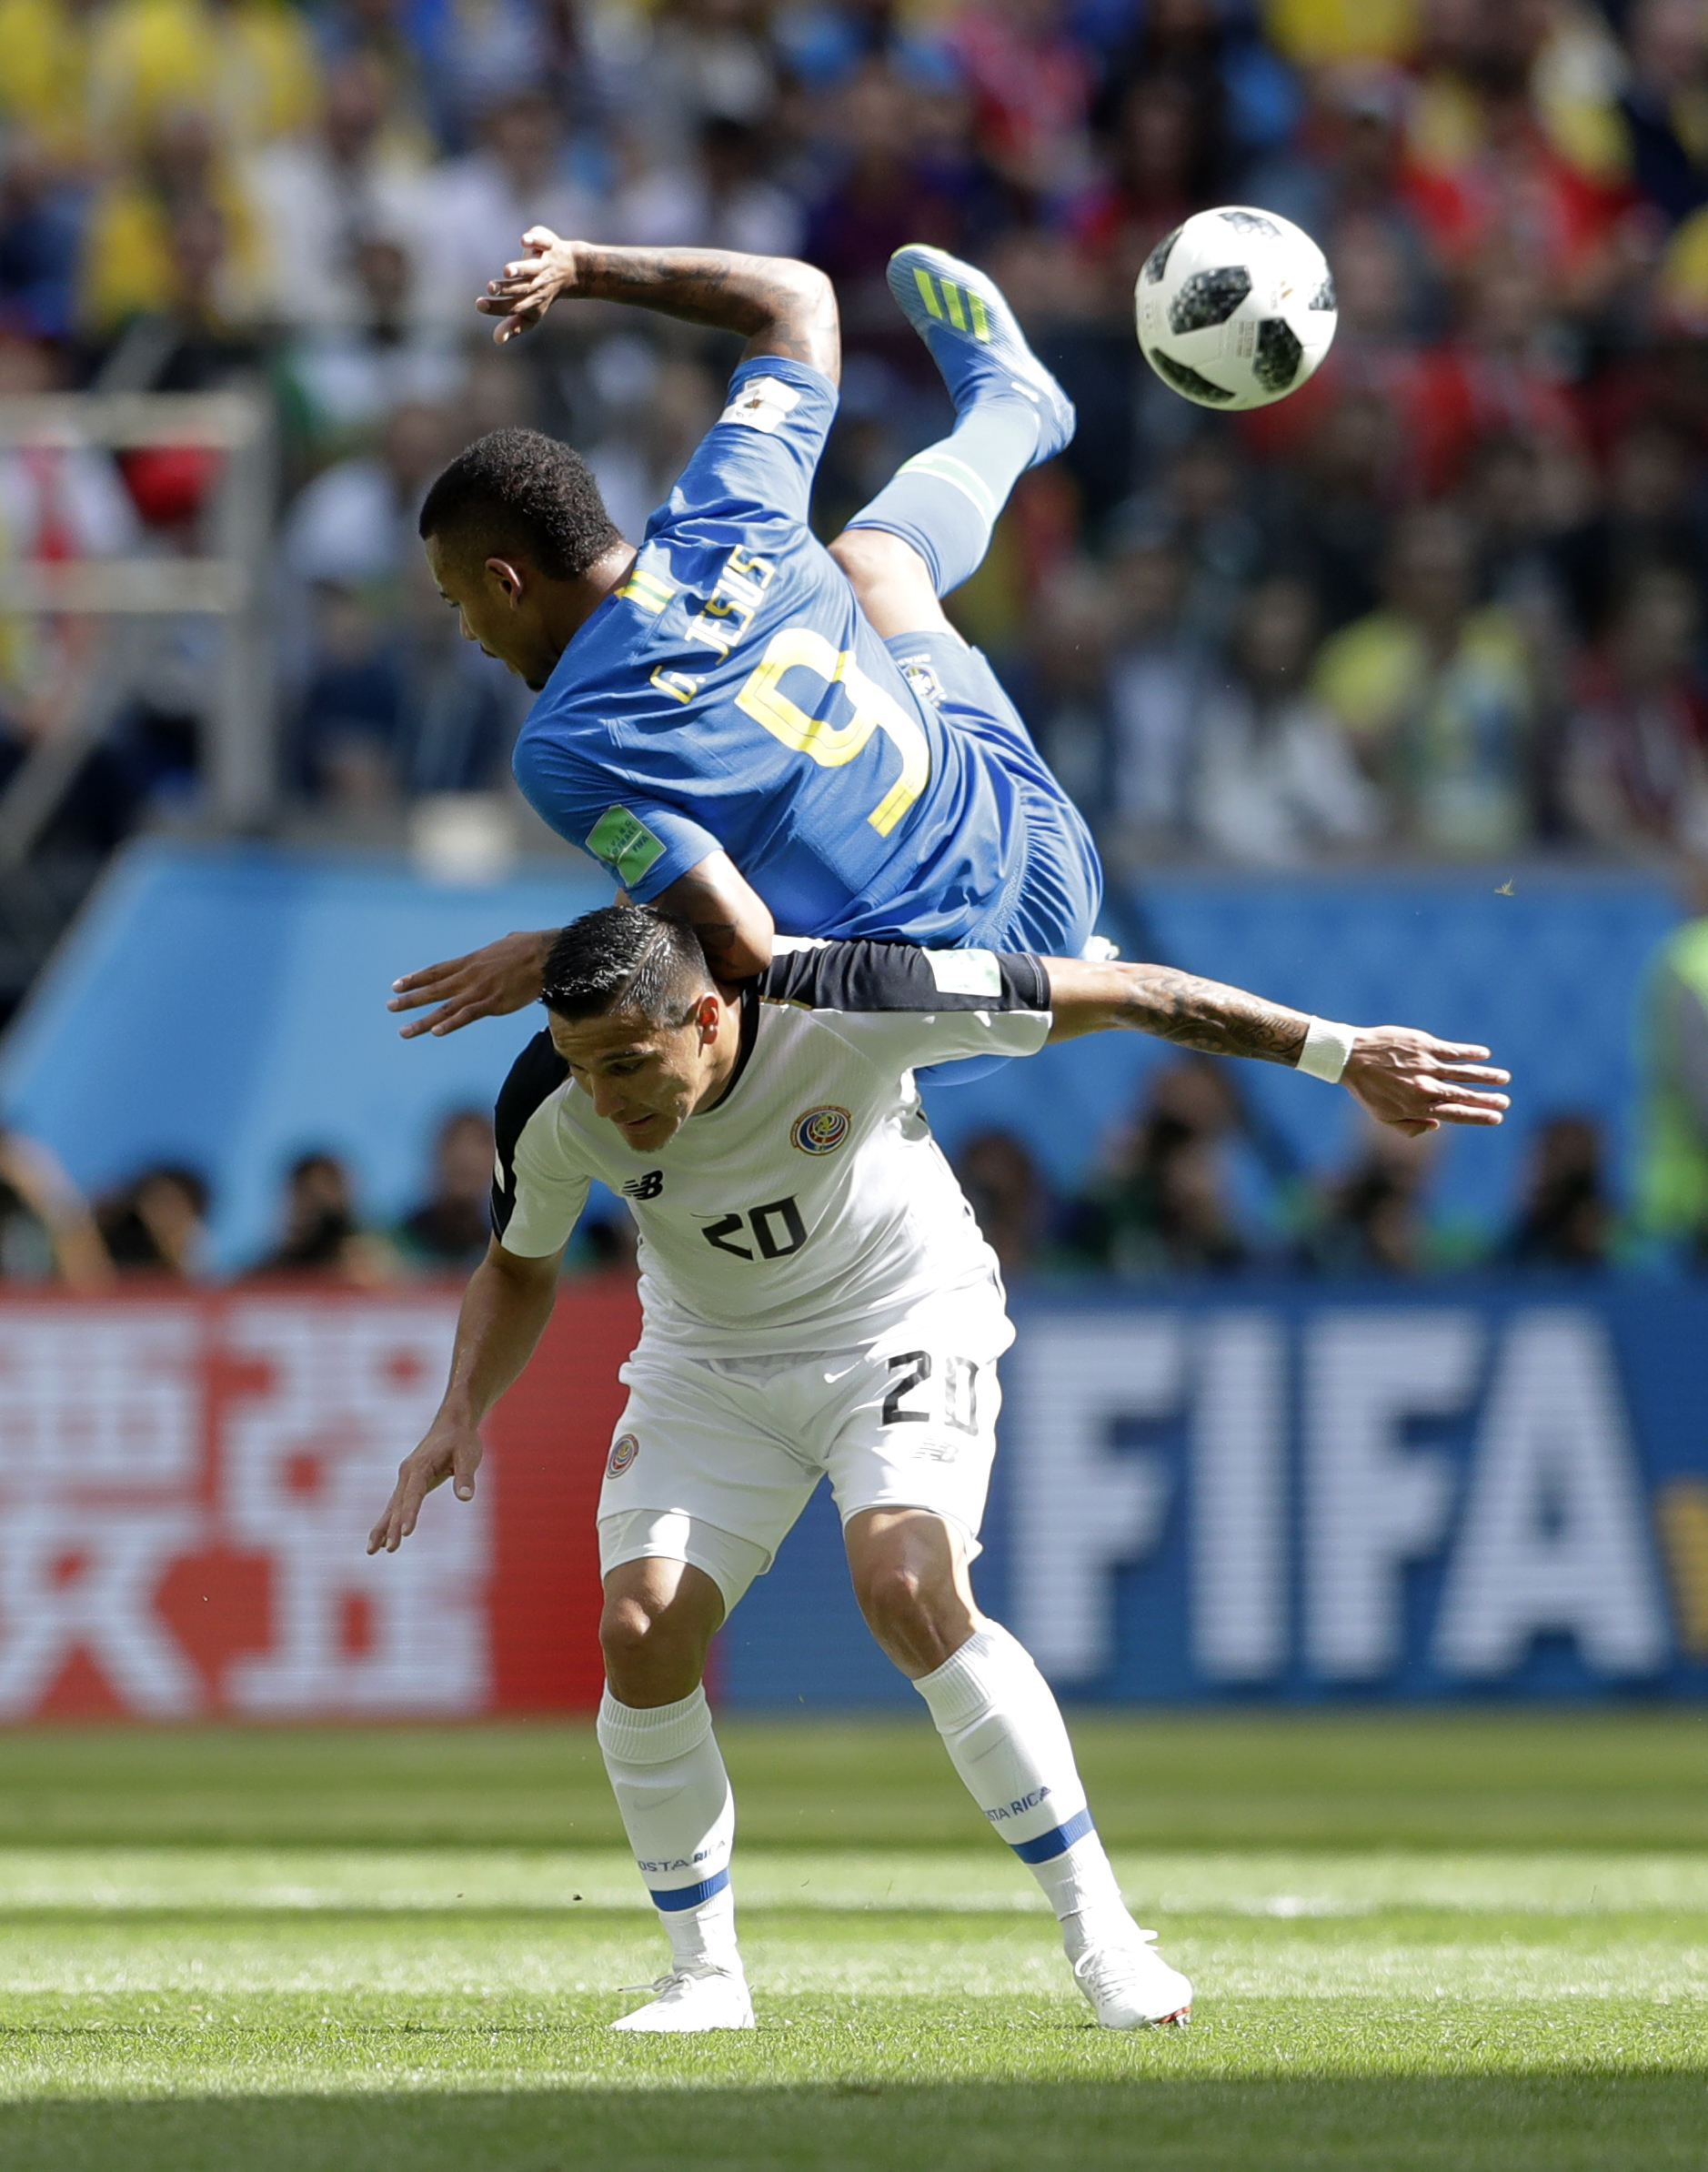 <div class='meta'><div class='origin-logo' data-origin='none'></div><span class='caption-text' data-credit='Petr David Josek/AP Photo'>Brazil's Gabriel Jesus, top, falls after jumping for a header with Costa Rica's David Guzman during the group E match between Brazil and Costa Rica on June 22.</span></div>